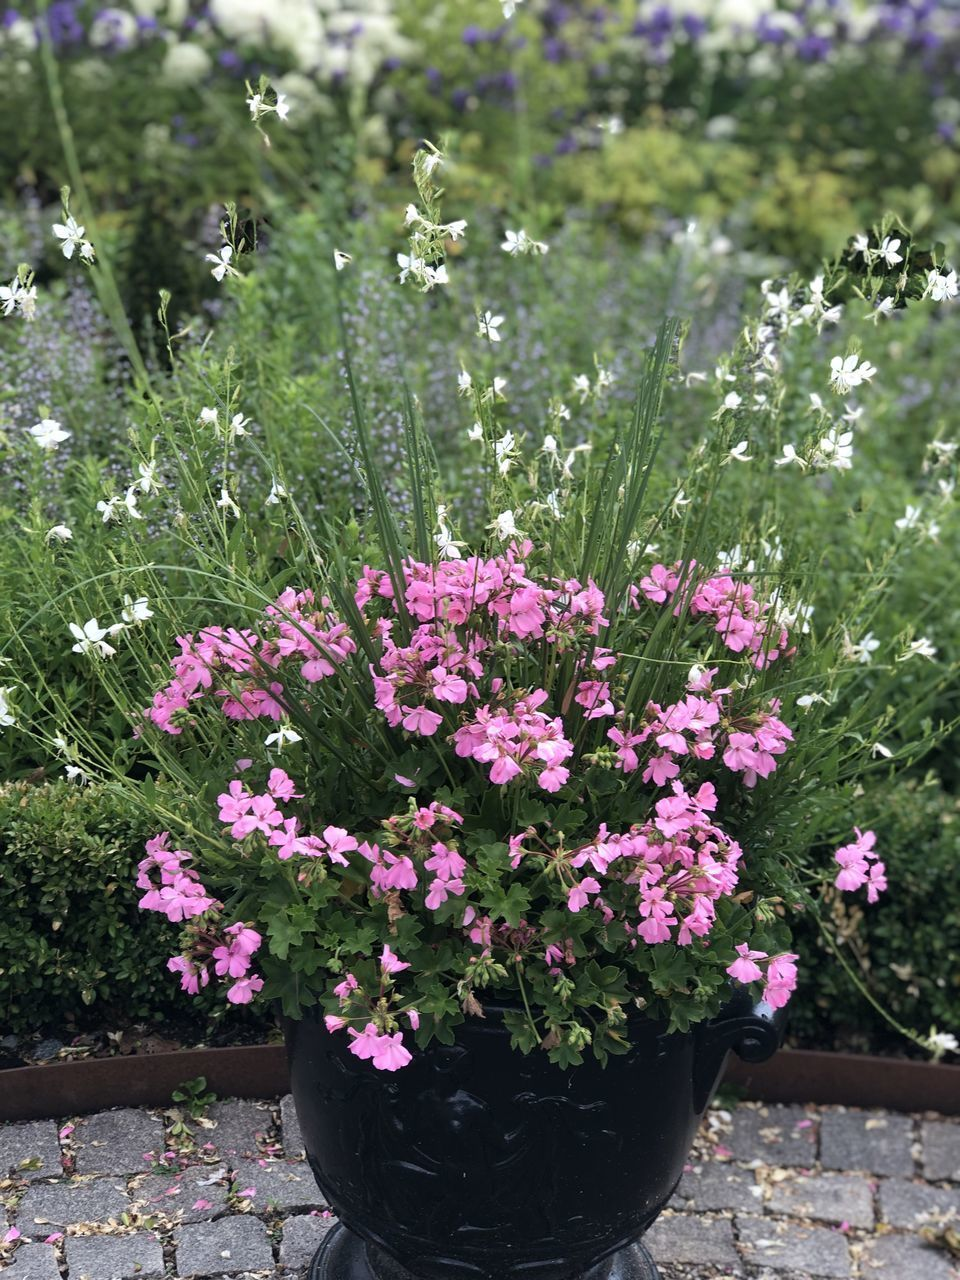 flower, flowering plant, plant, fragility, freshness, vulnerability, beauty in nature, nature, growth, pink color, day, flower head, no people, close-up, outdoors, inflorescence, petal, front or back yard, garden, grass, springtime, purple, flower pot, flowerbed